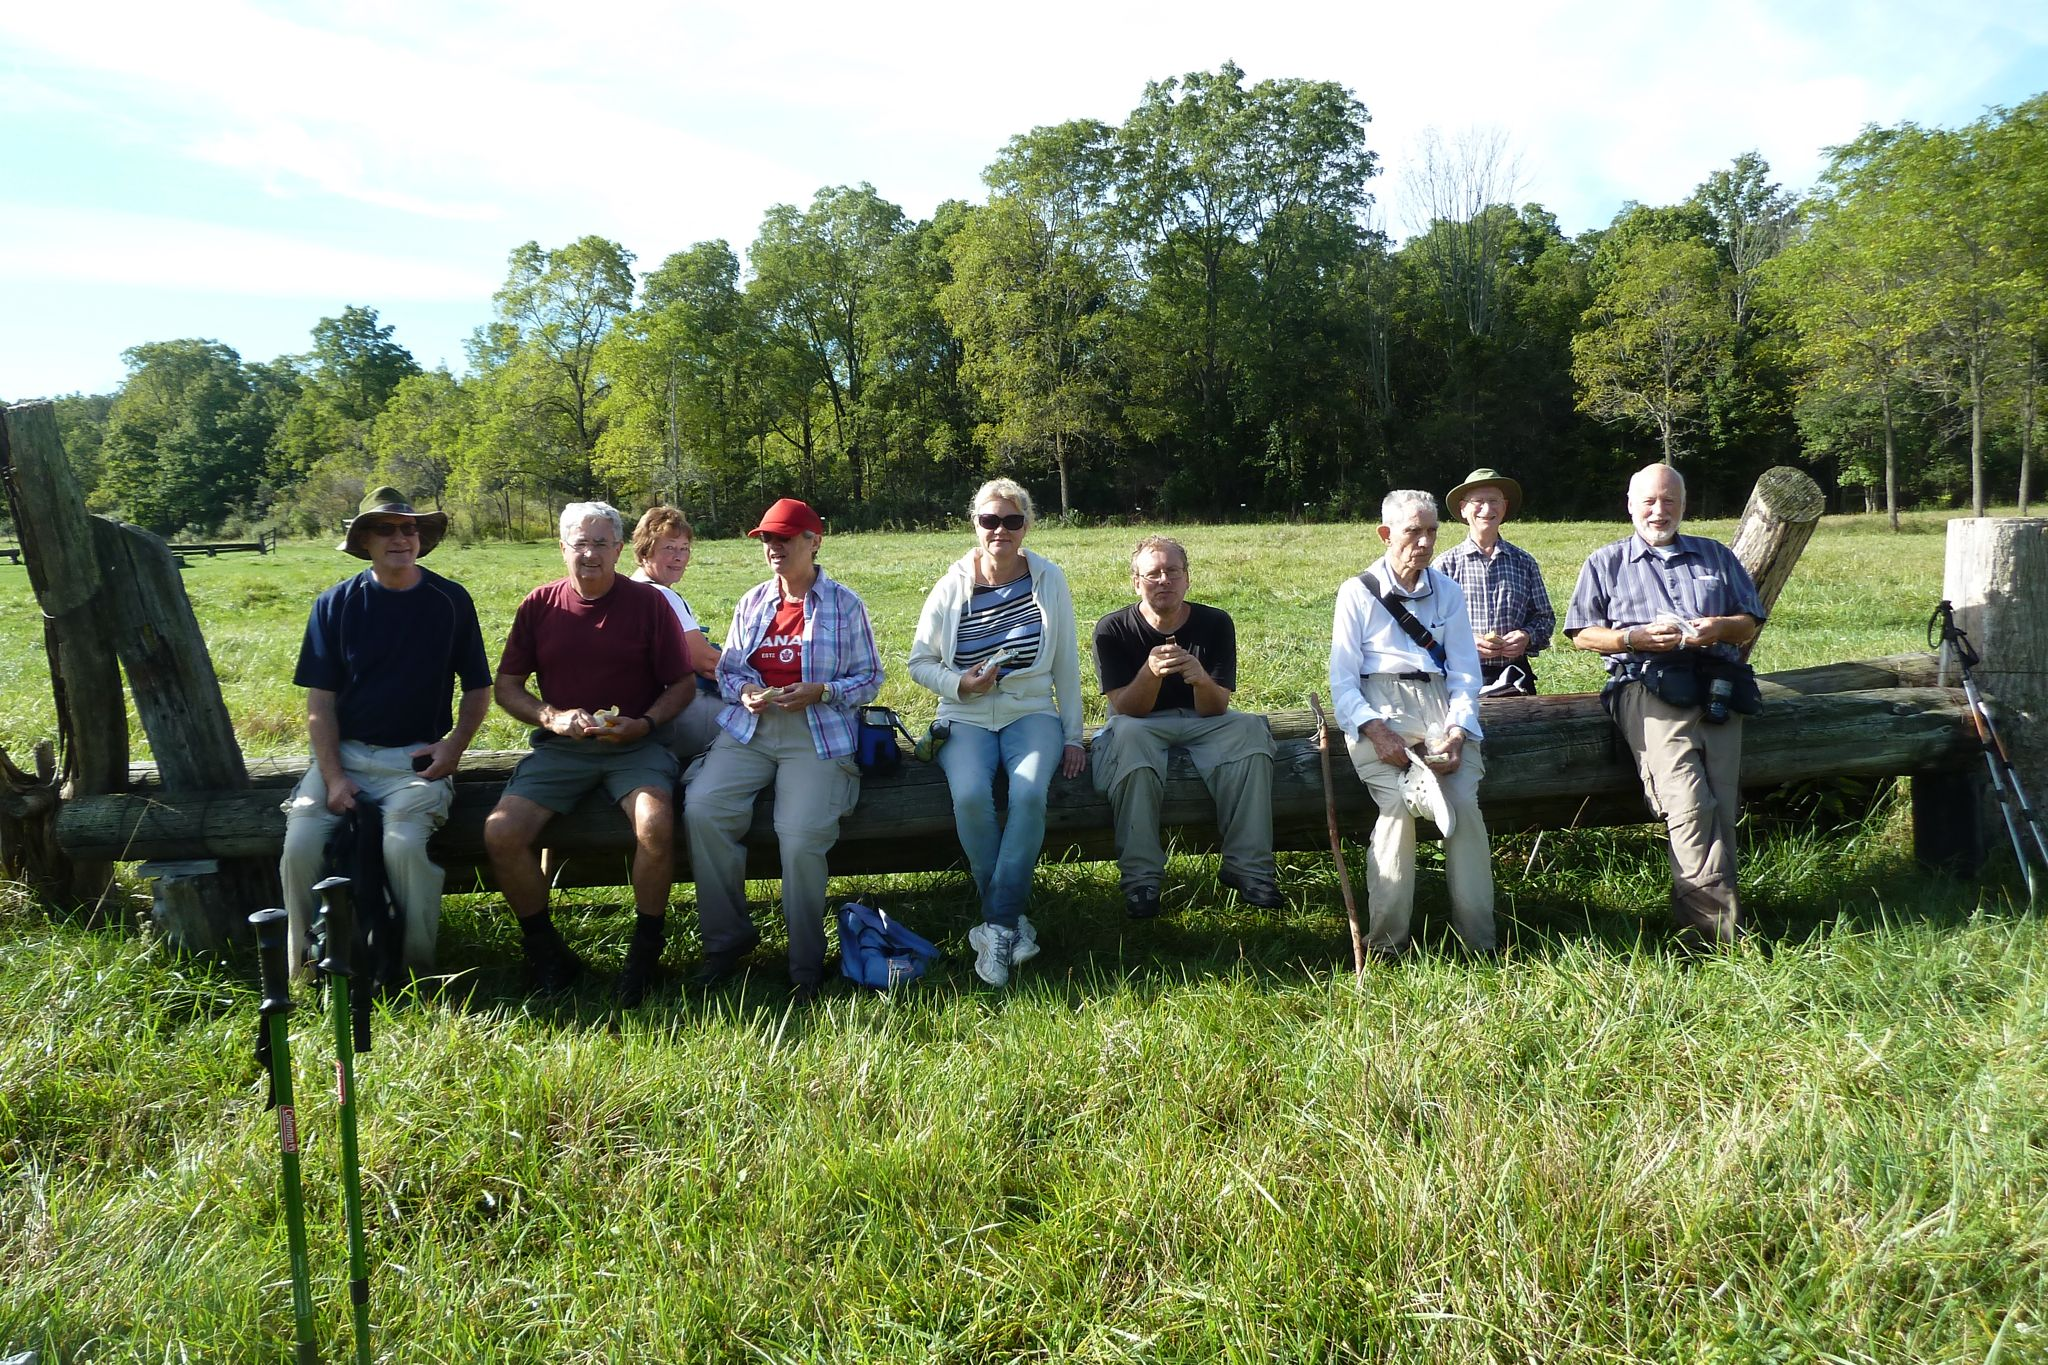 The group resting at horse farm on day 3 of our fortieth end-to-end.